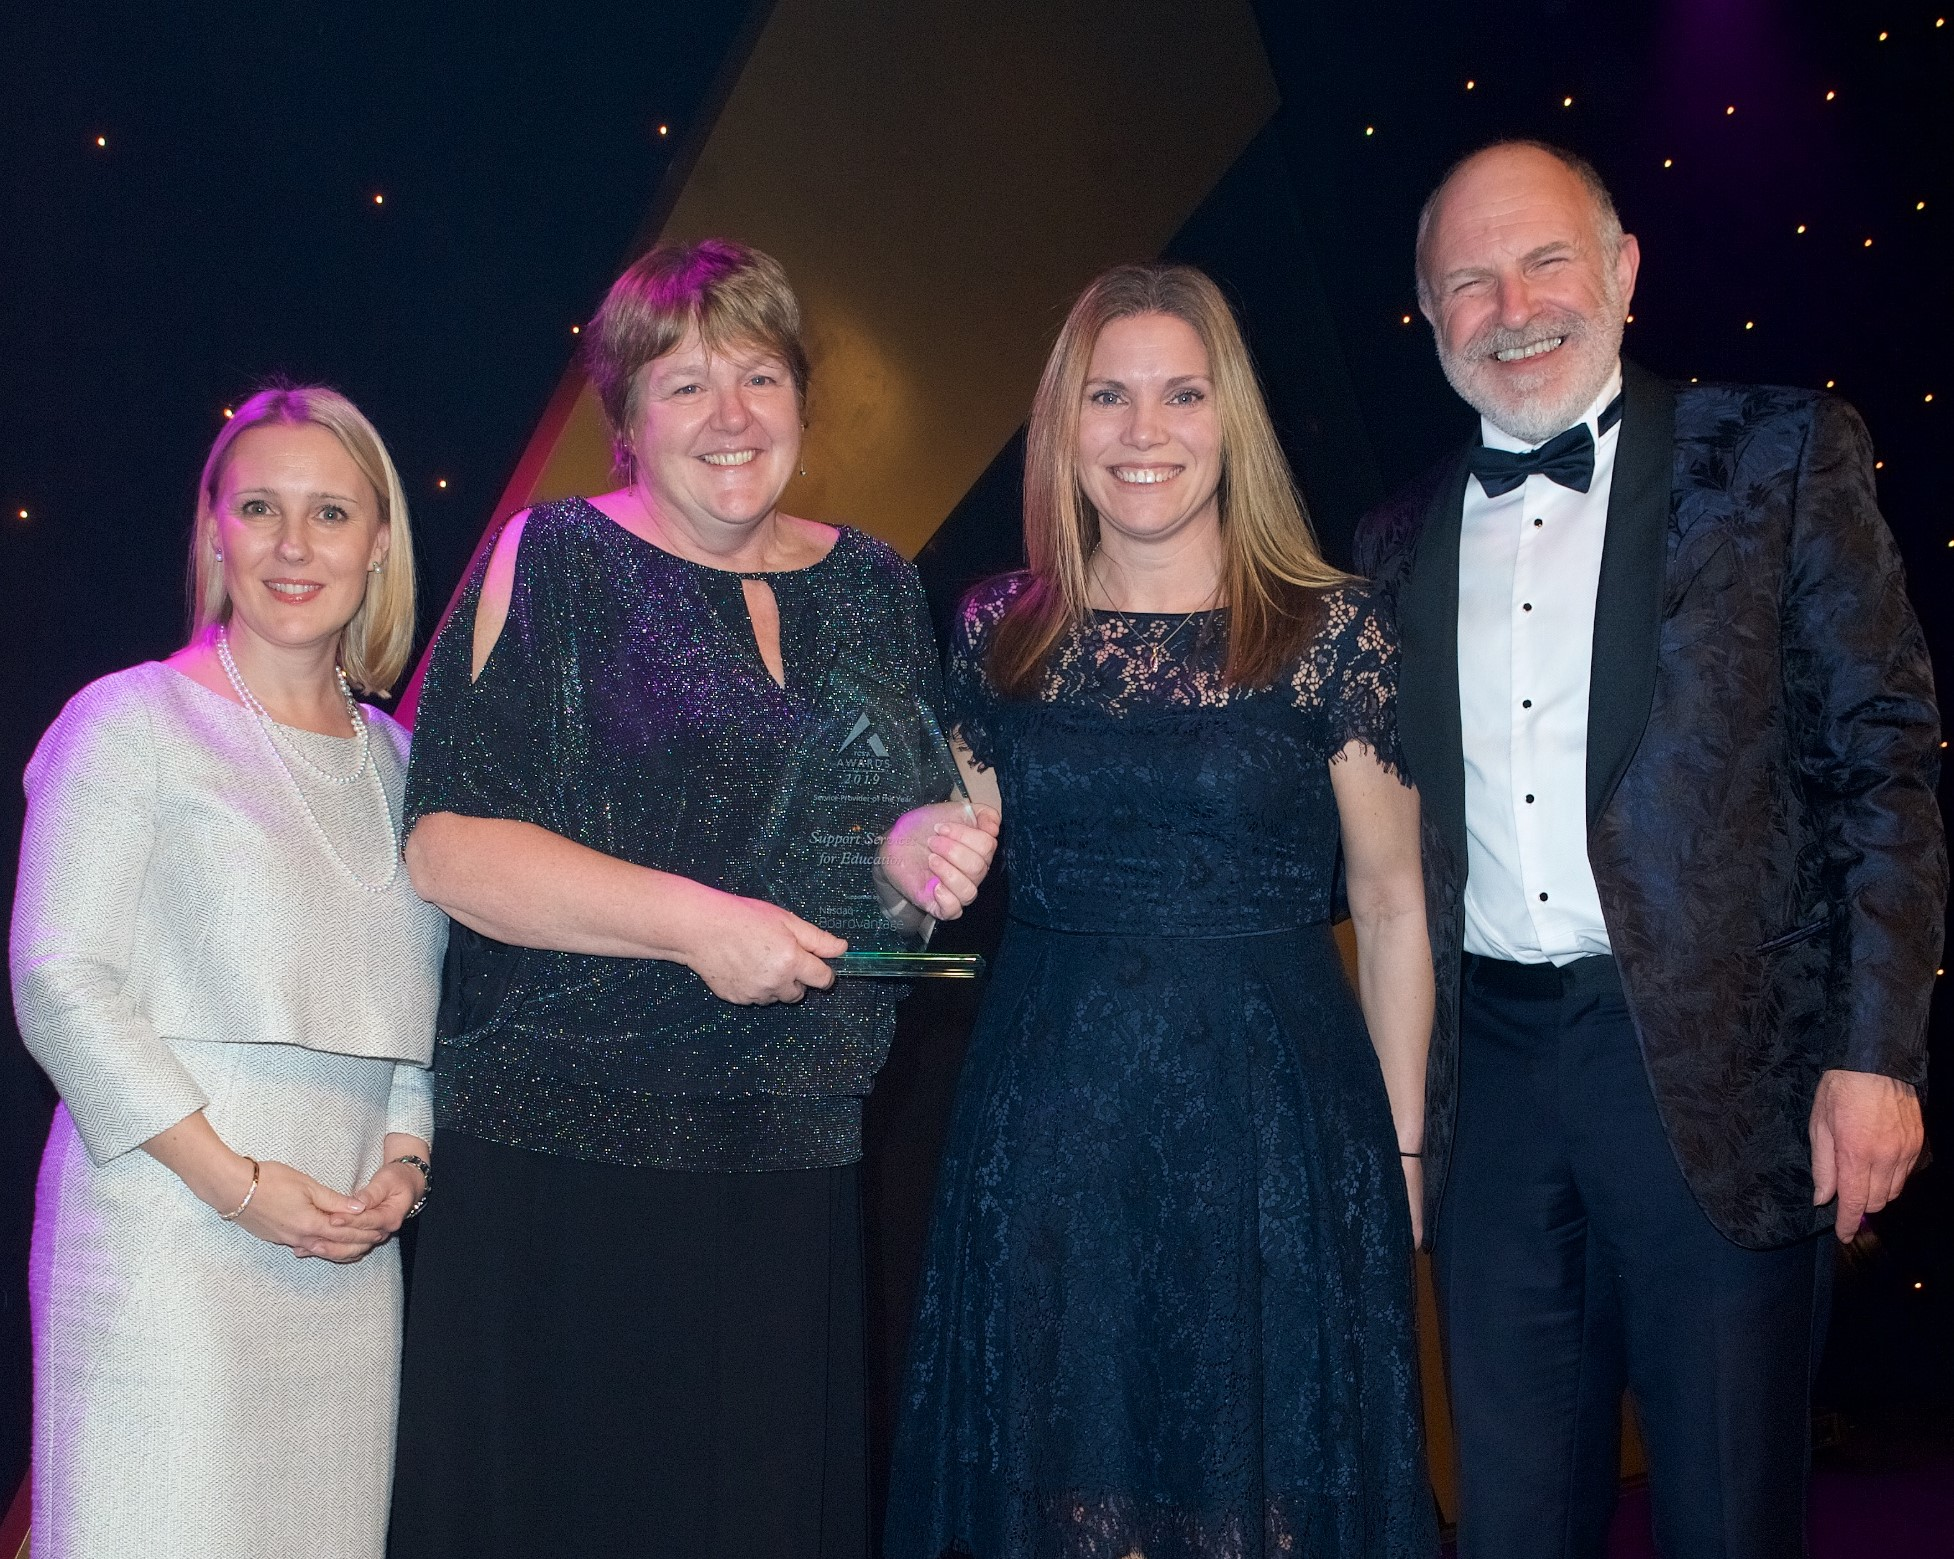 ICSA Awards - Service Provider of the Year